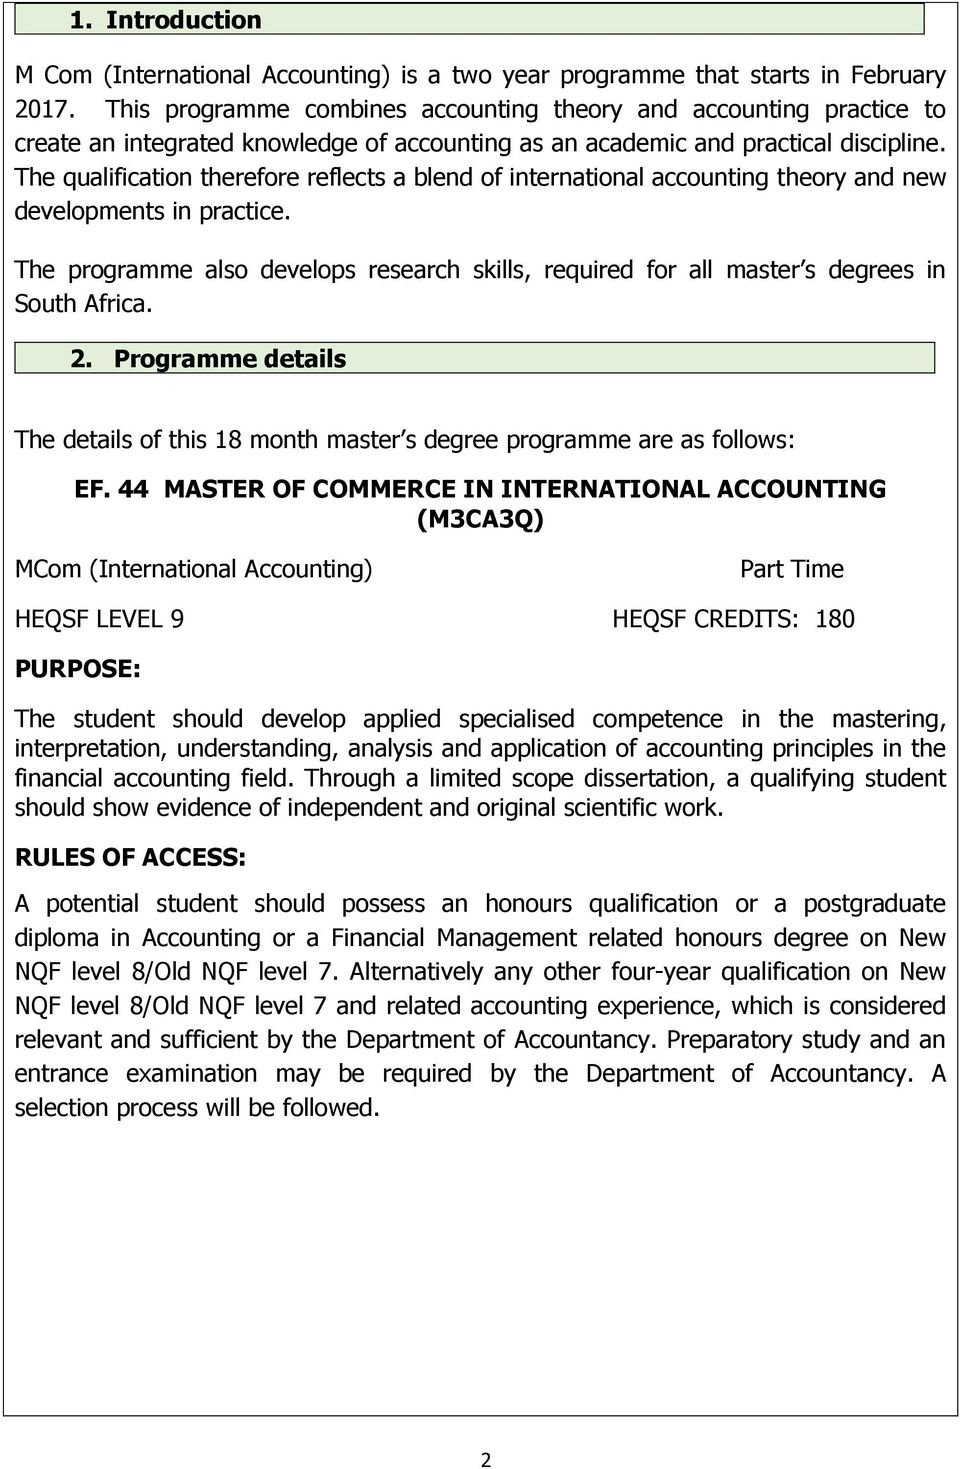 The qualification therefore reflects a blend of international accounting theory and new developments in practice.